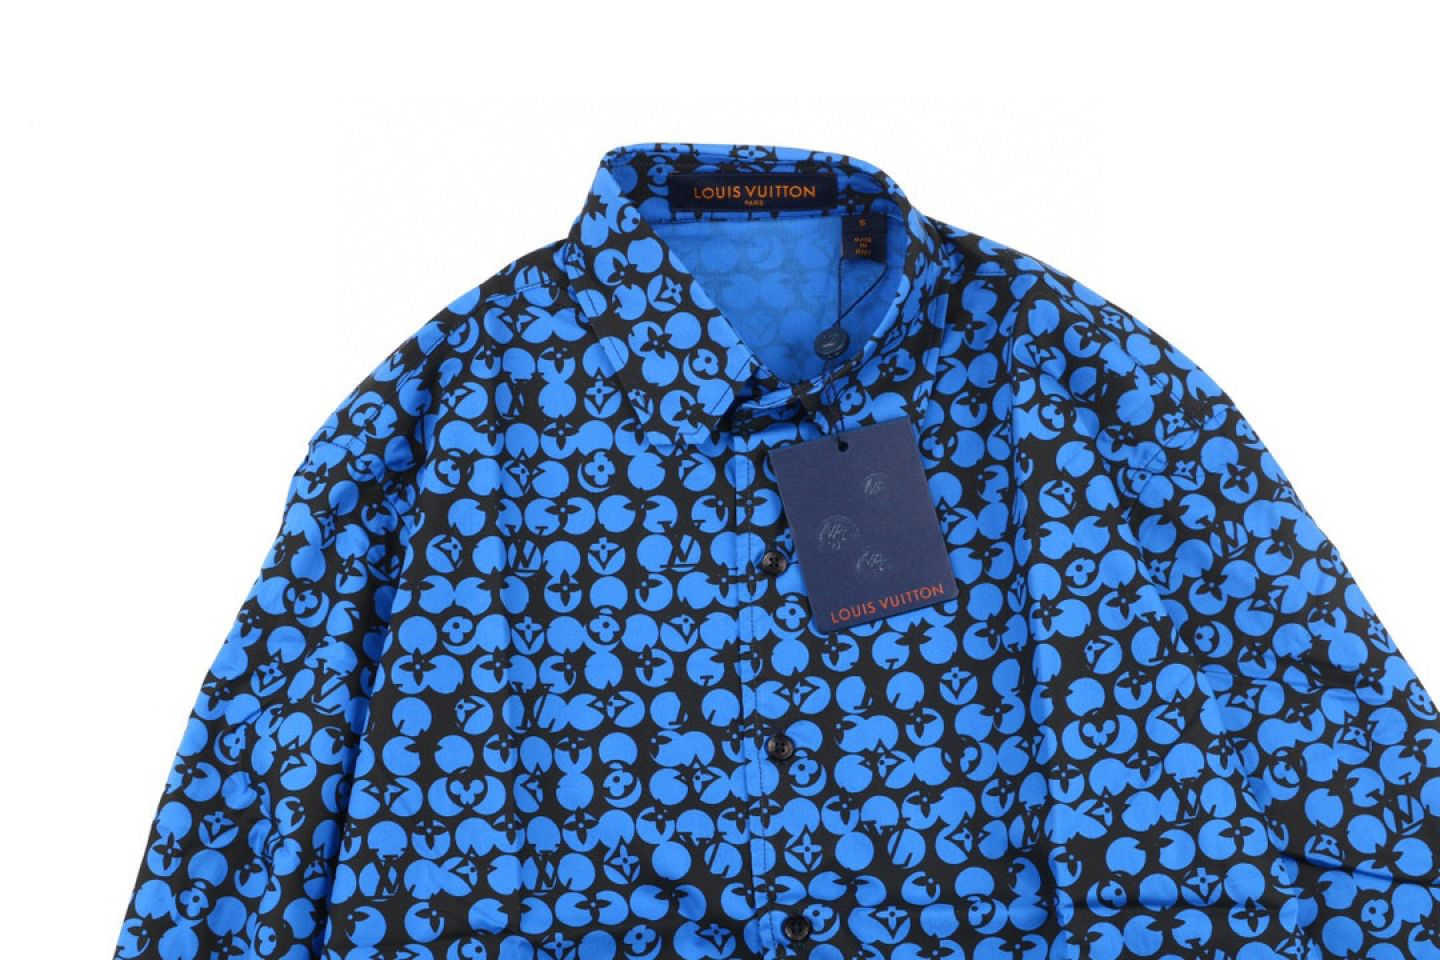 Shirt Louis Vuitton LV 19ss Ocean Blue Logo Print Long Sleeve Shirt 3 louis_vuitton_lv_19ss_ocean_blue_logo_print_long_sleeve_shirt_3